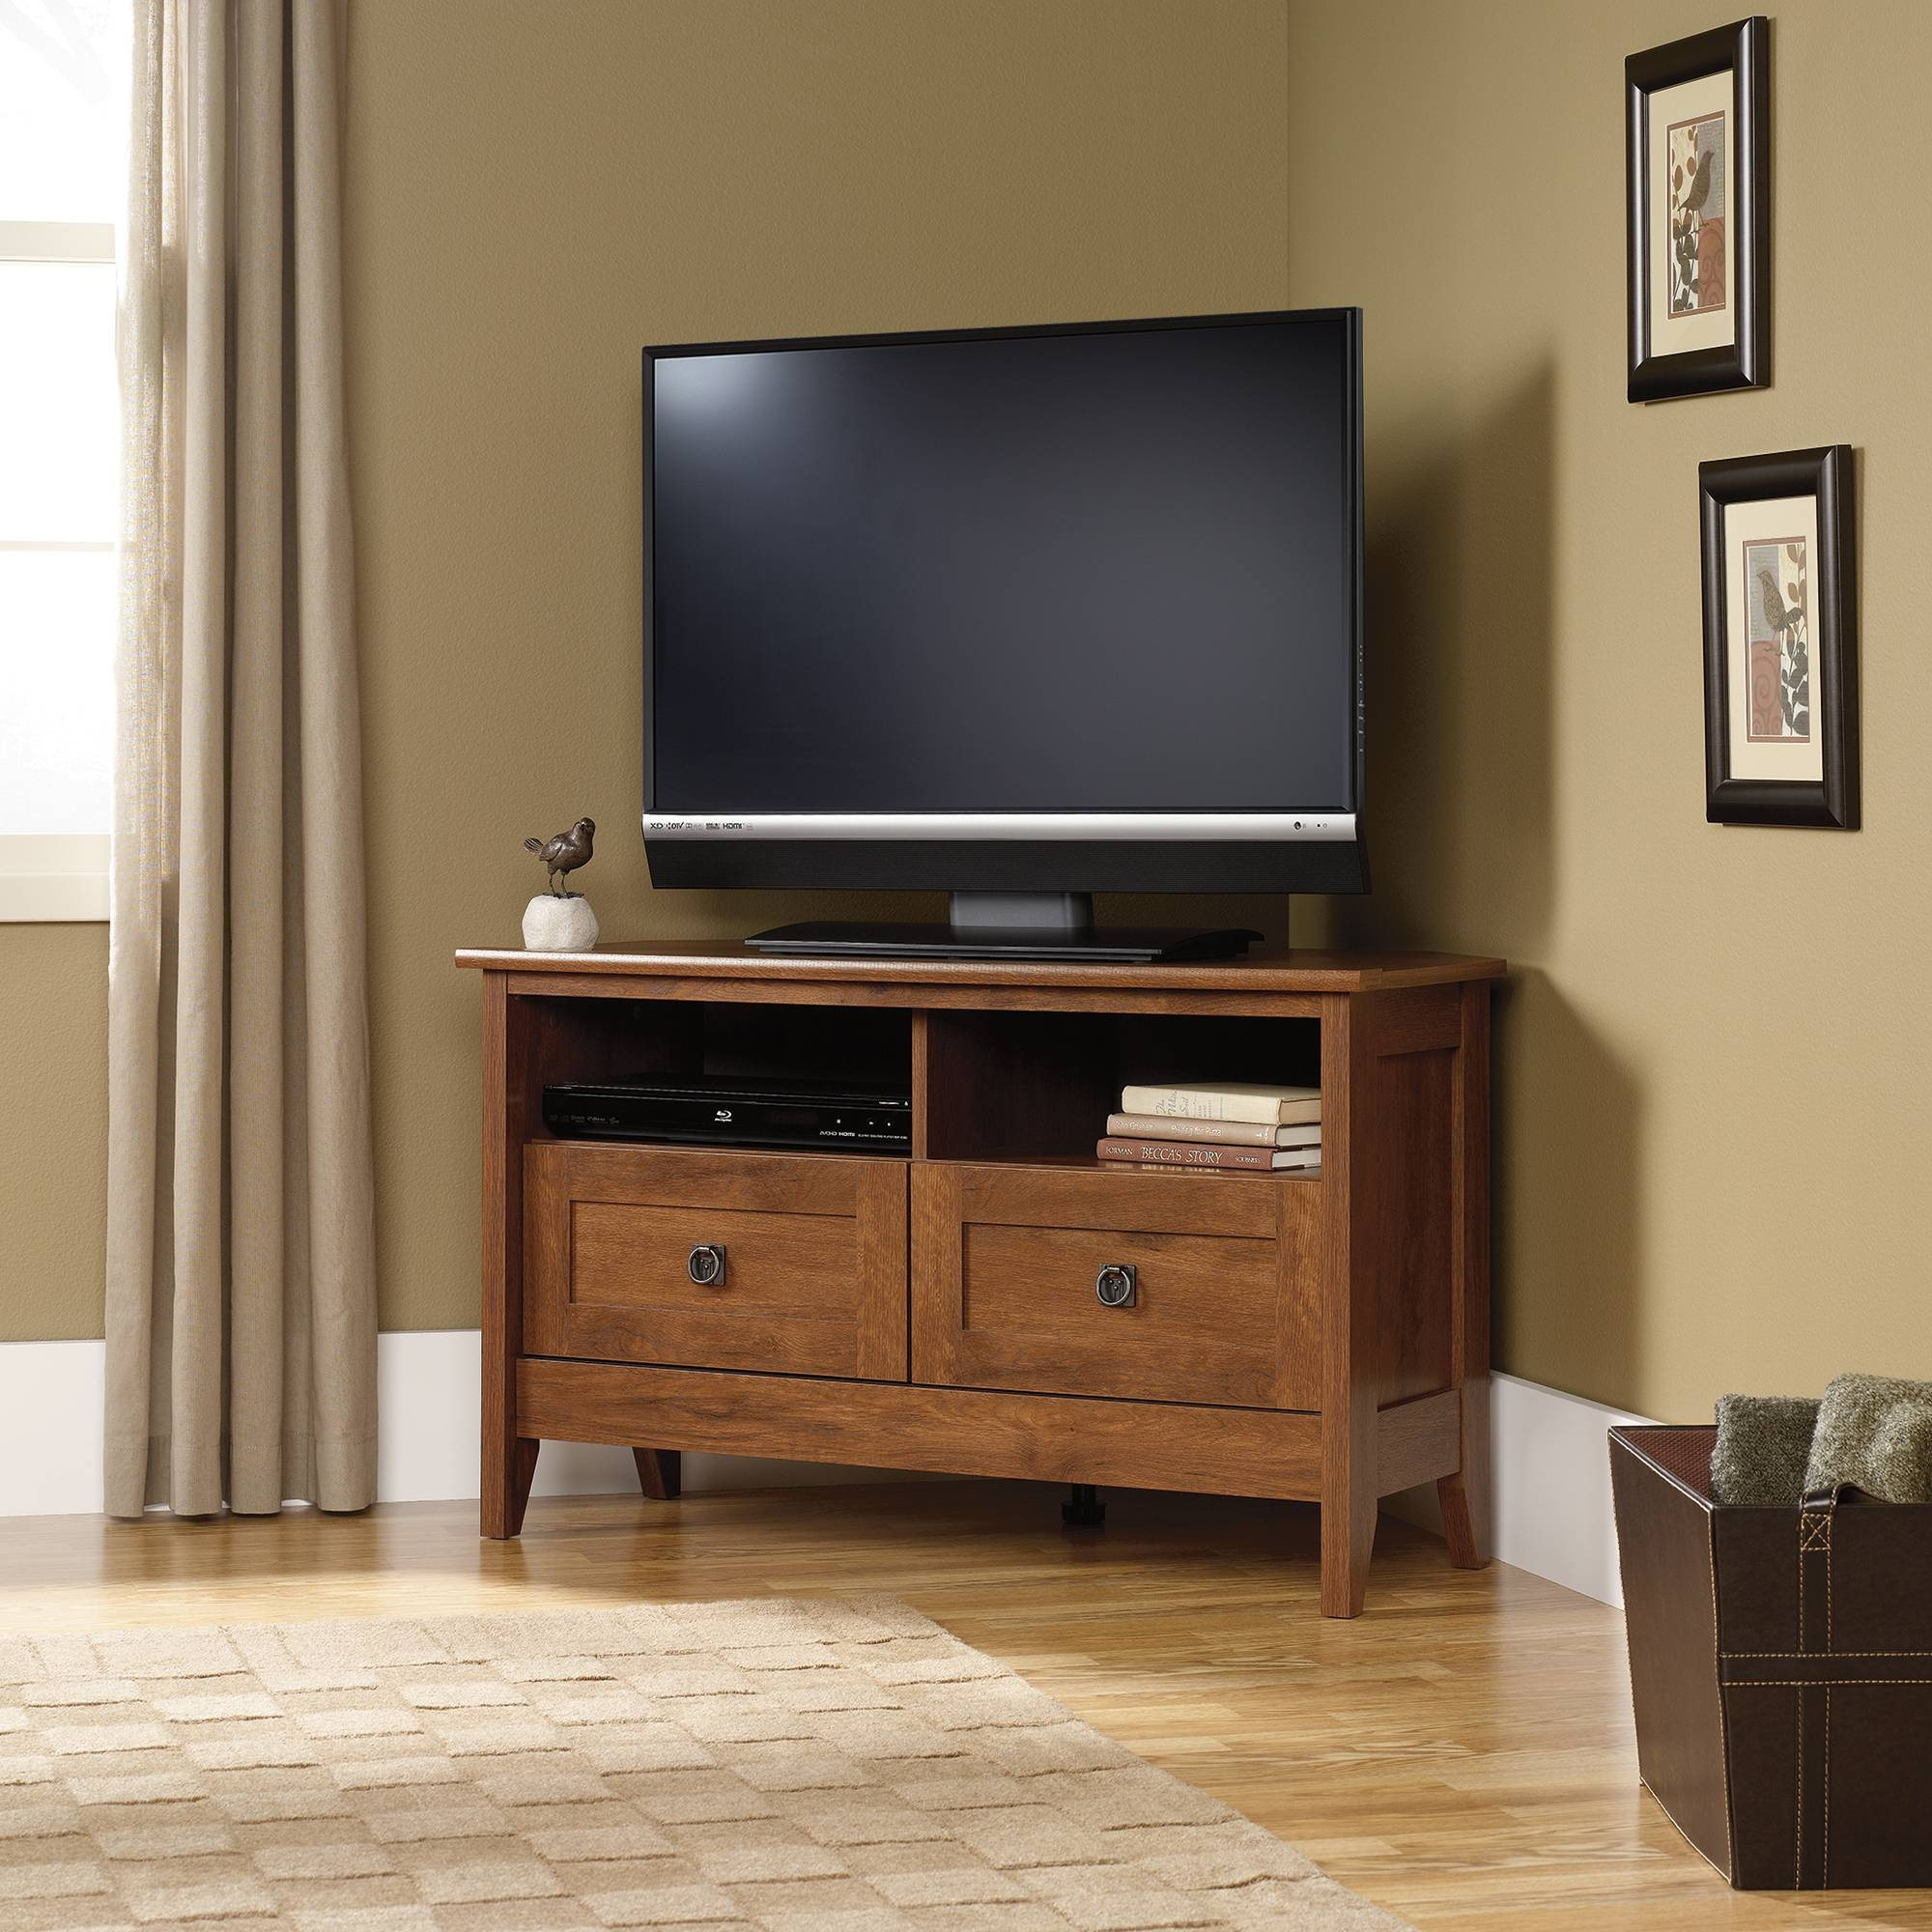 Sauder Select | Corner Tv Stand | 410627 | Sauder pertaining to Corner Tv Stands (Image 12 of 15)